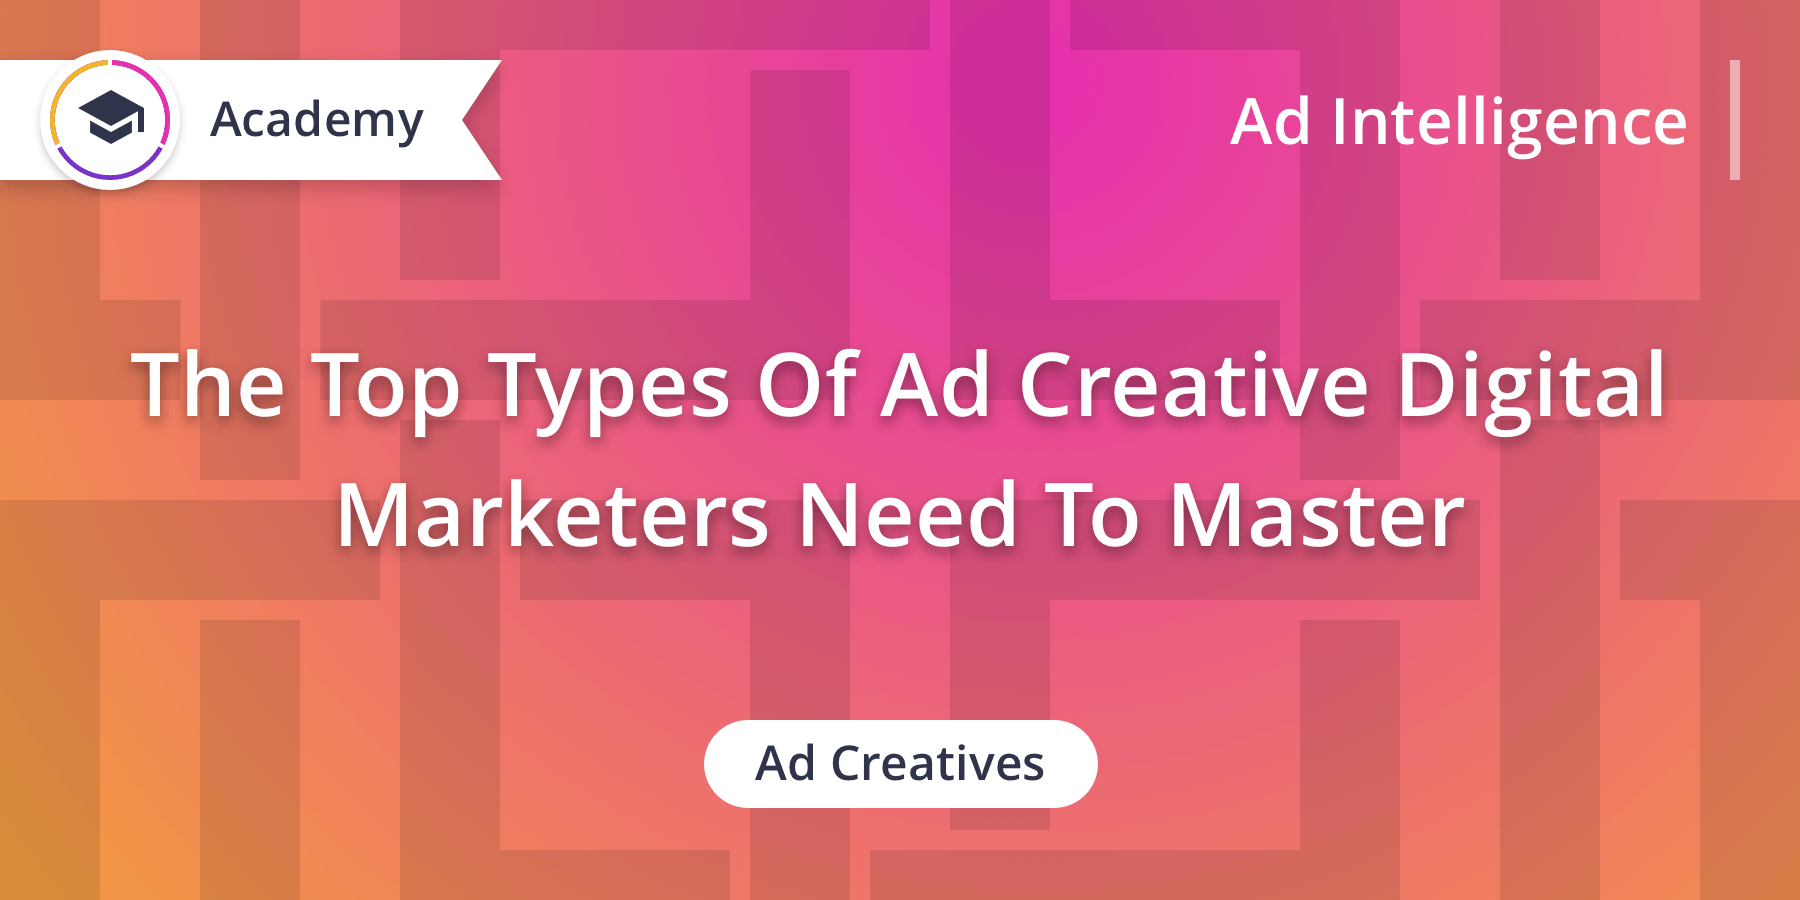 The 4 Types Of Mobile Ad Creative Every Digital Marketer Should Master